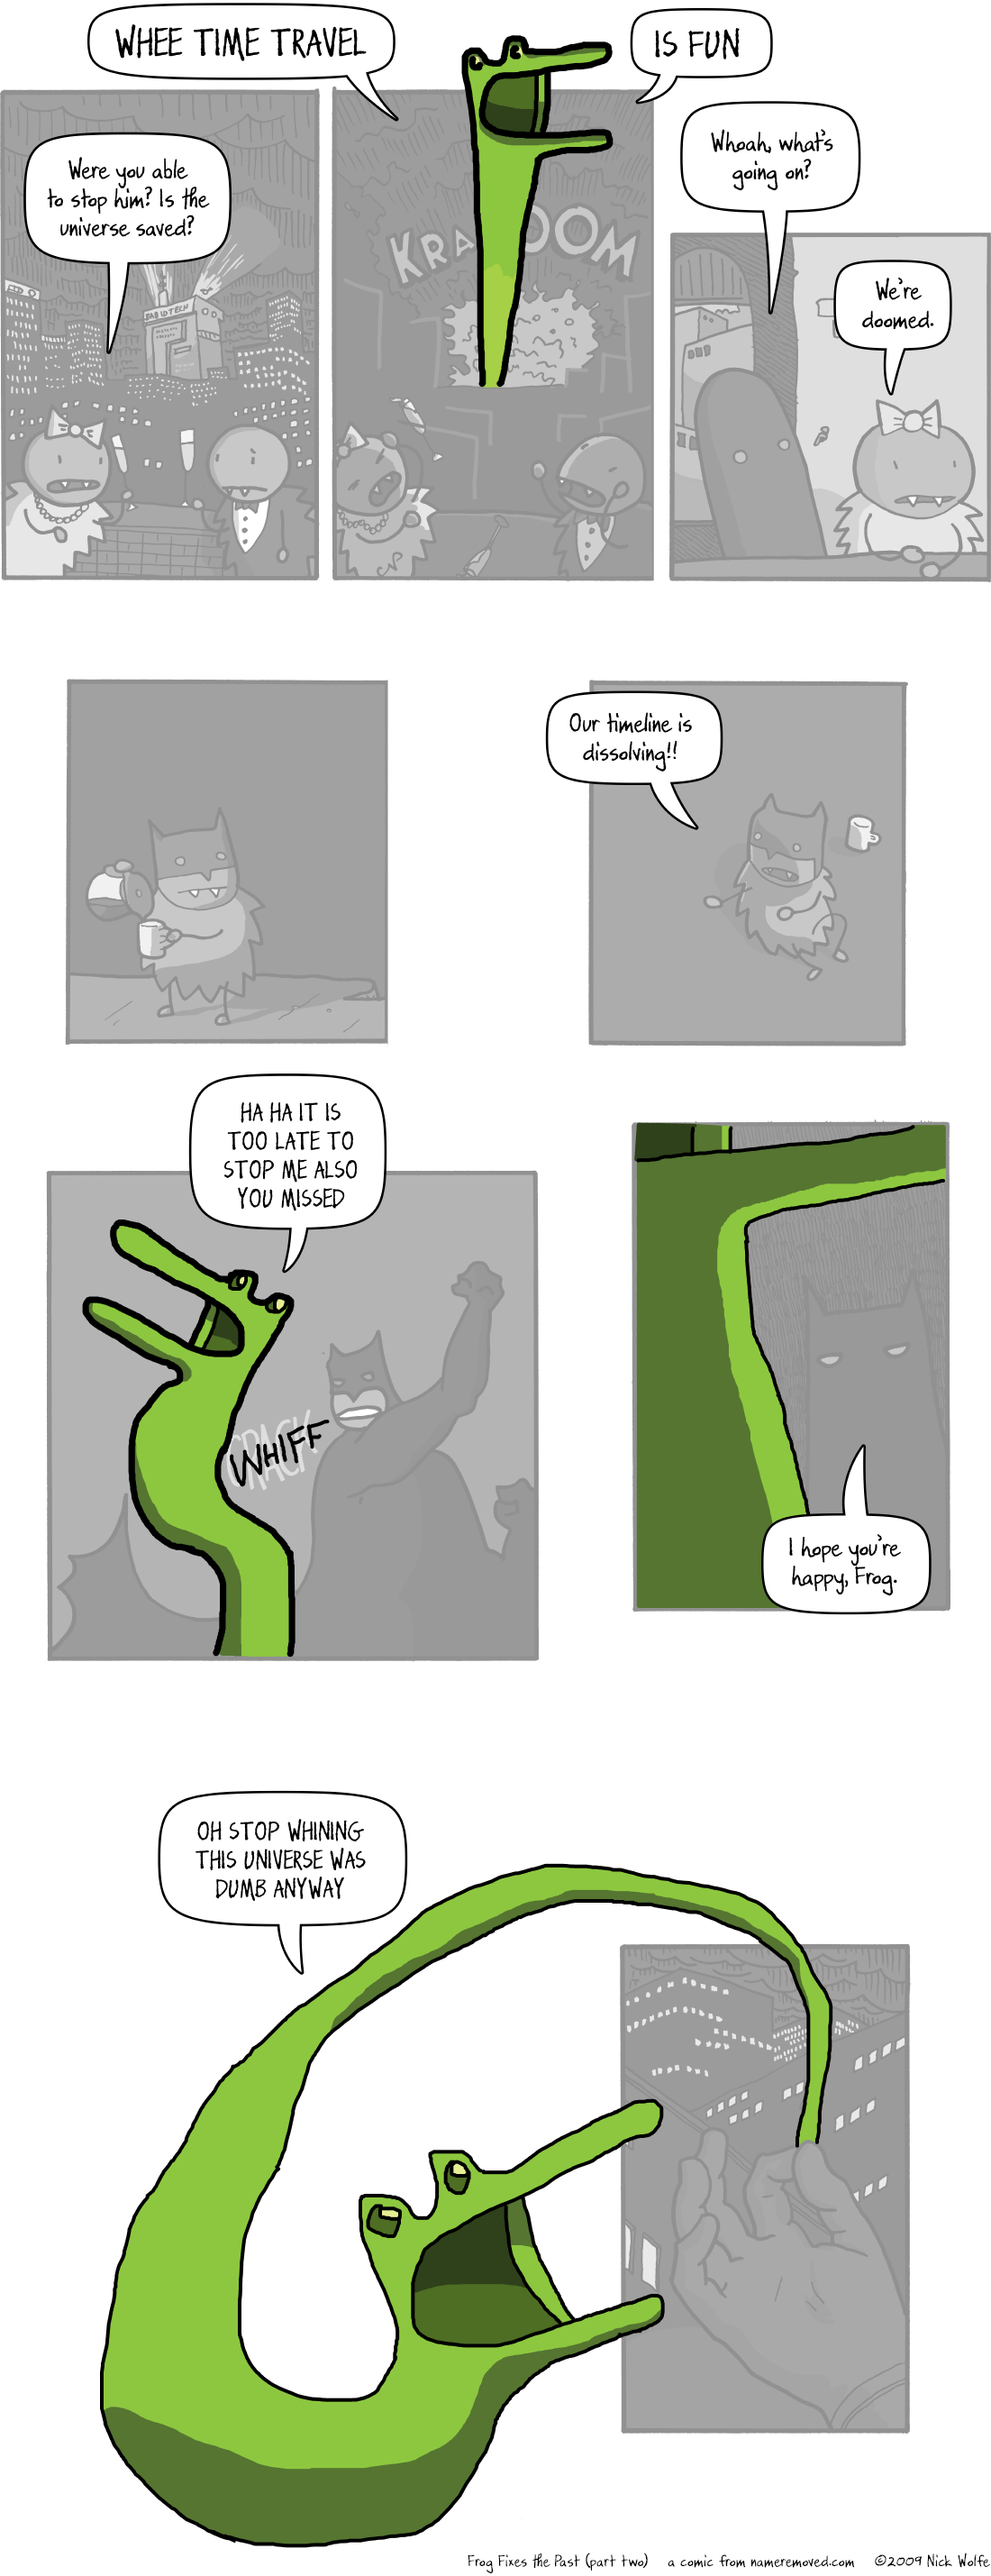 Frog Fixes The Past (part two)